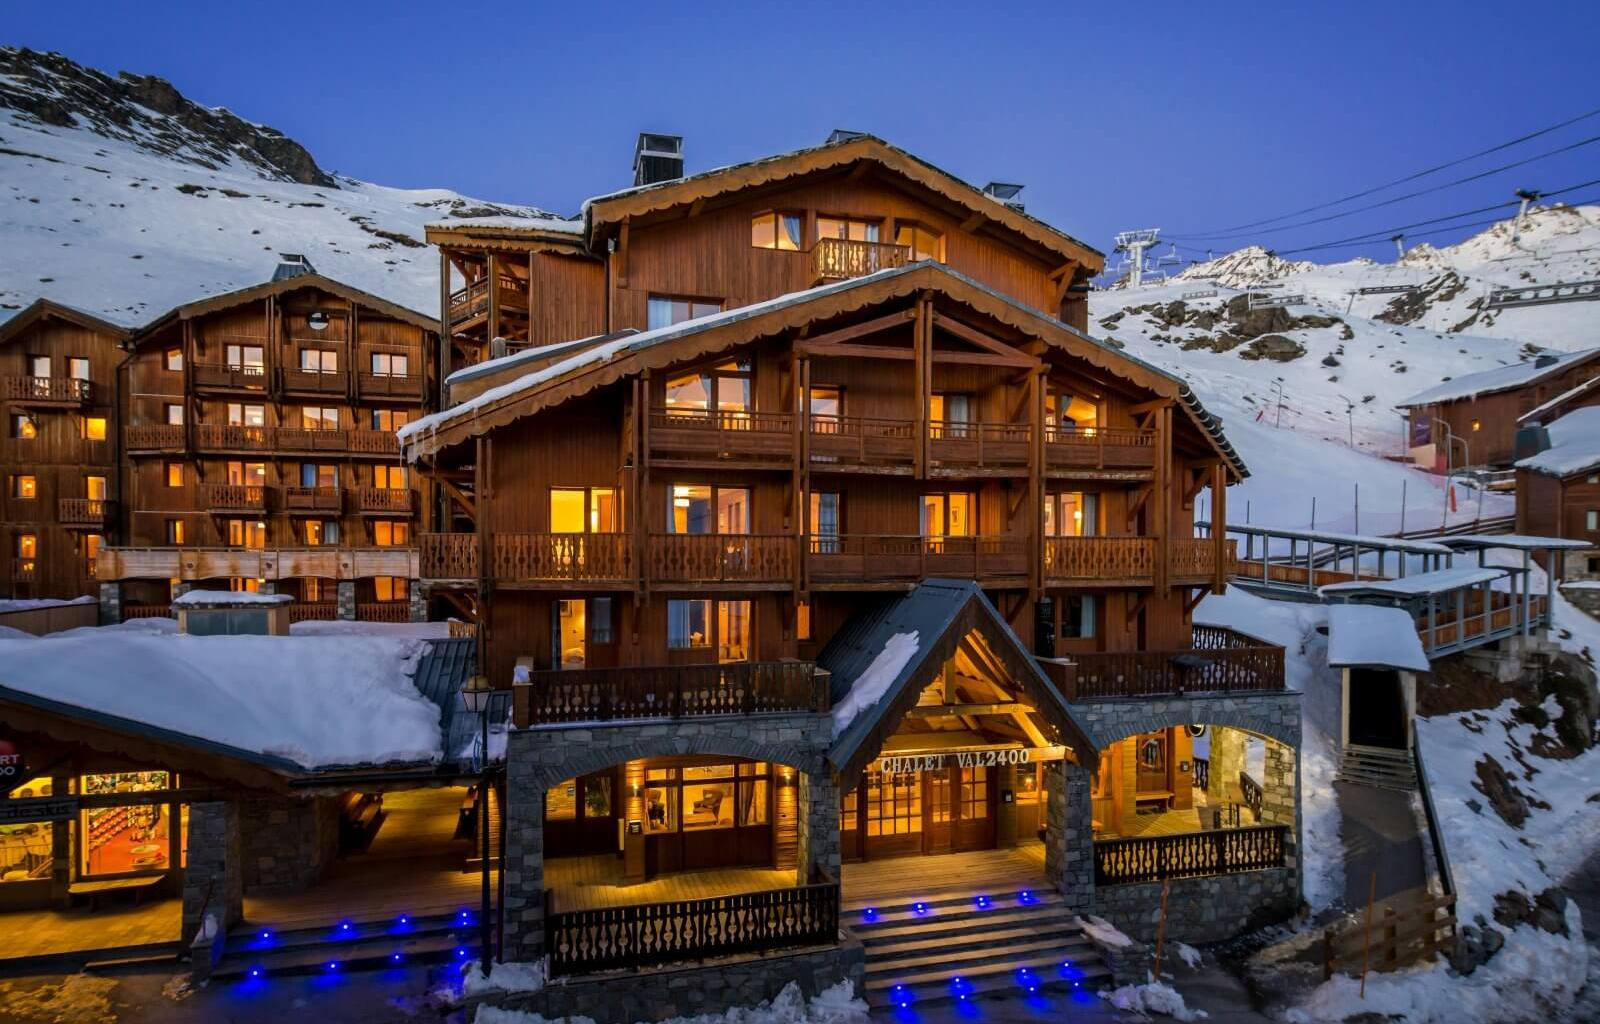 Chalet Val2400